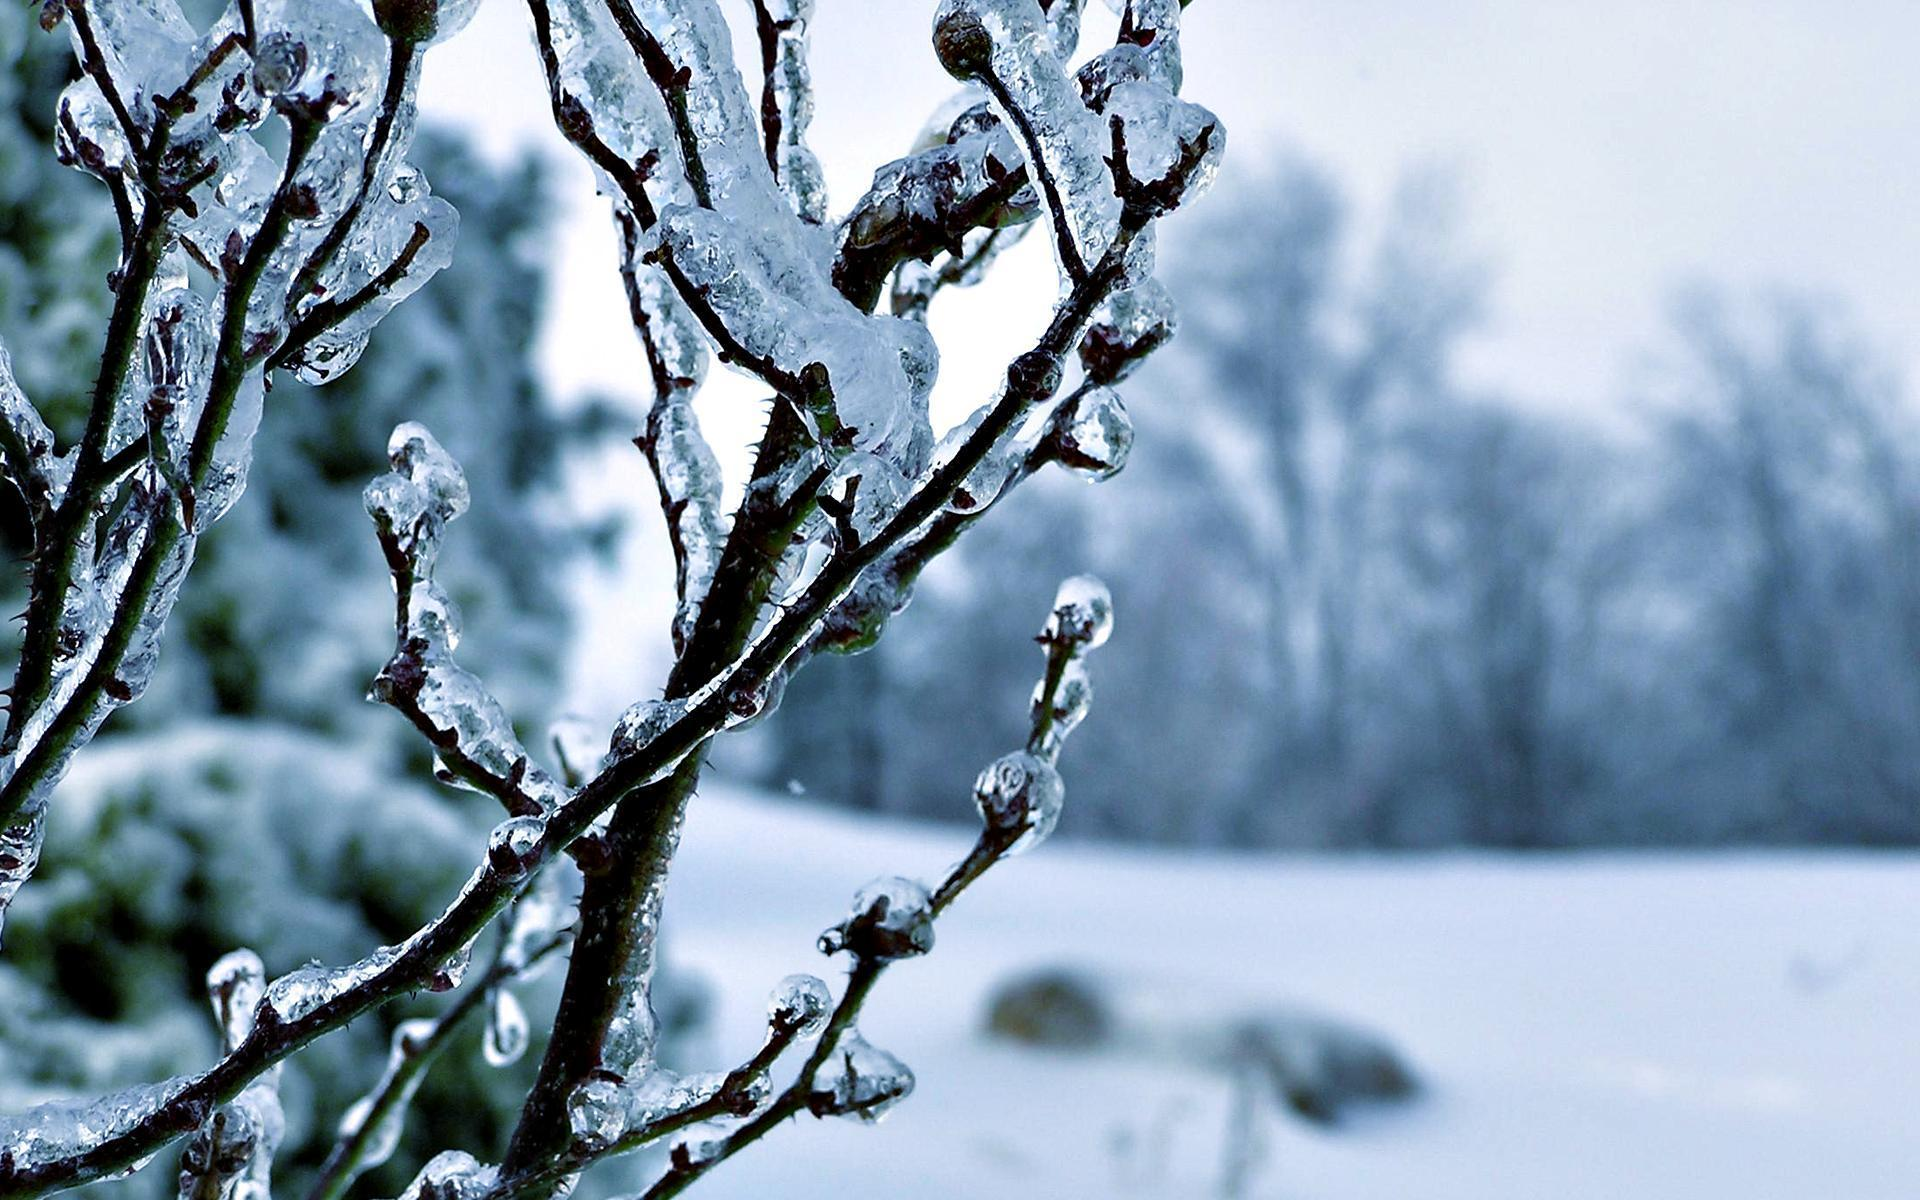 Winter Wallpaper 27 18430 HD Wallpaper | Wallroro.